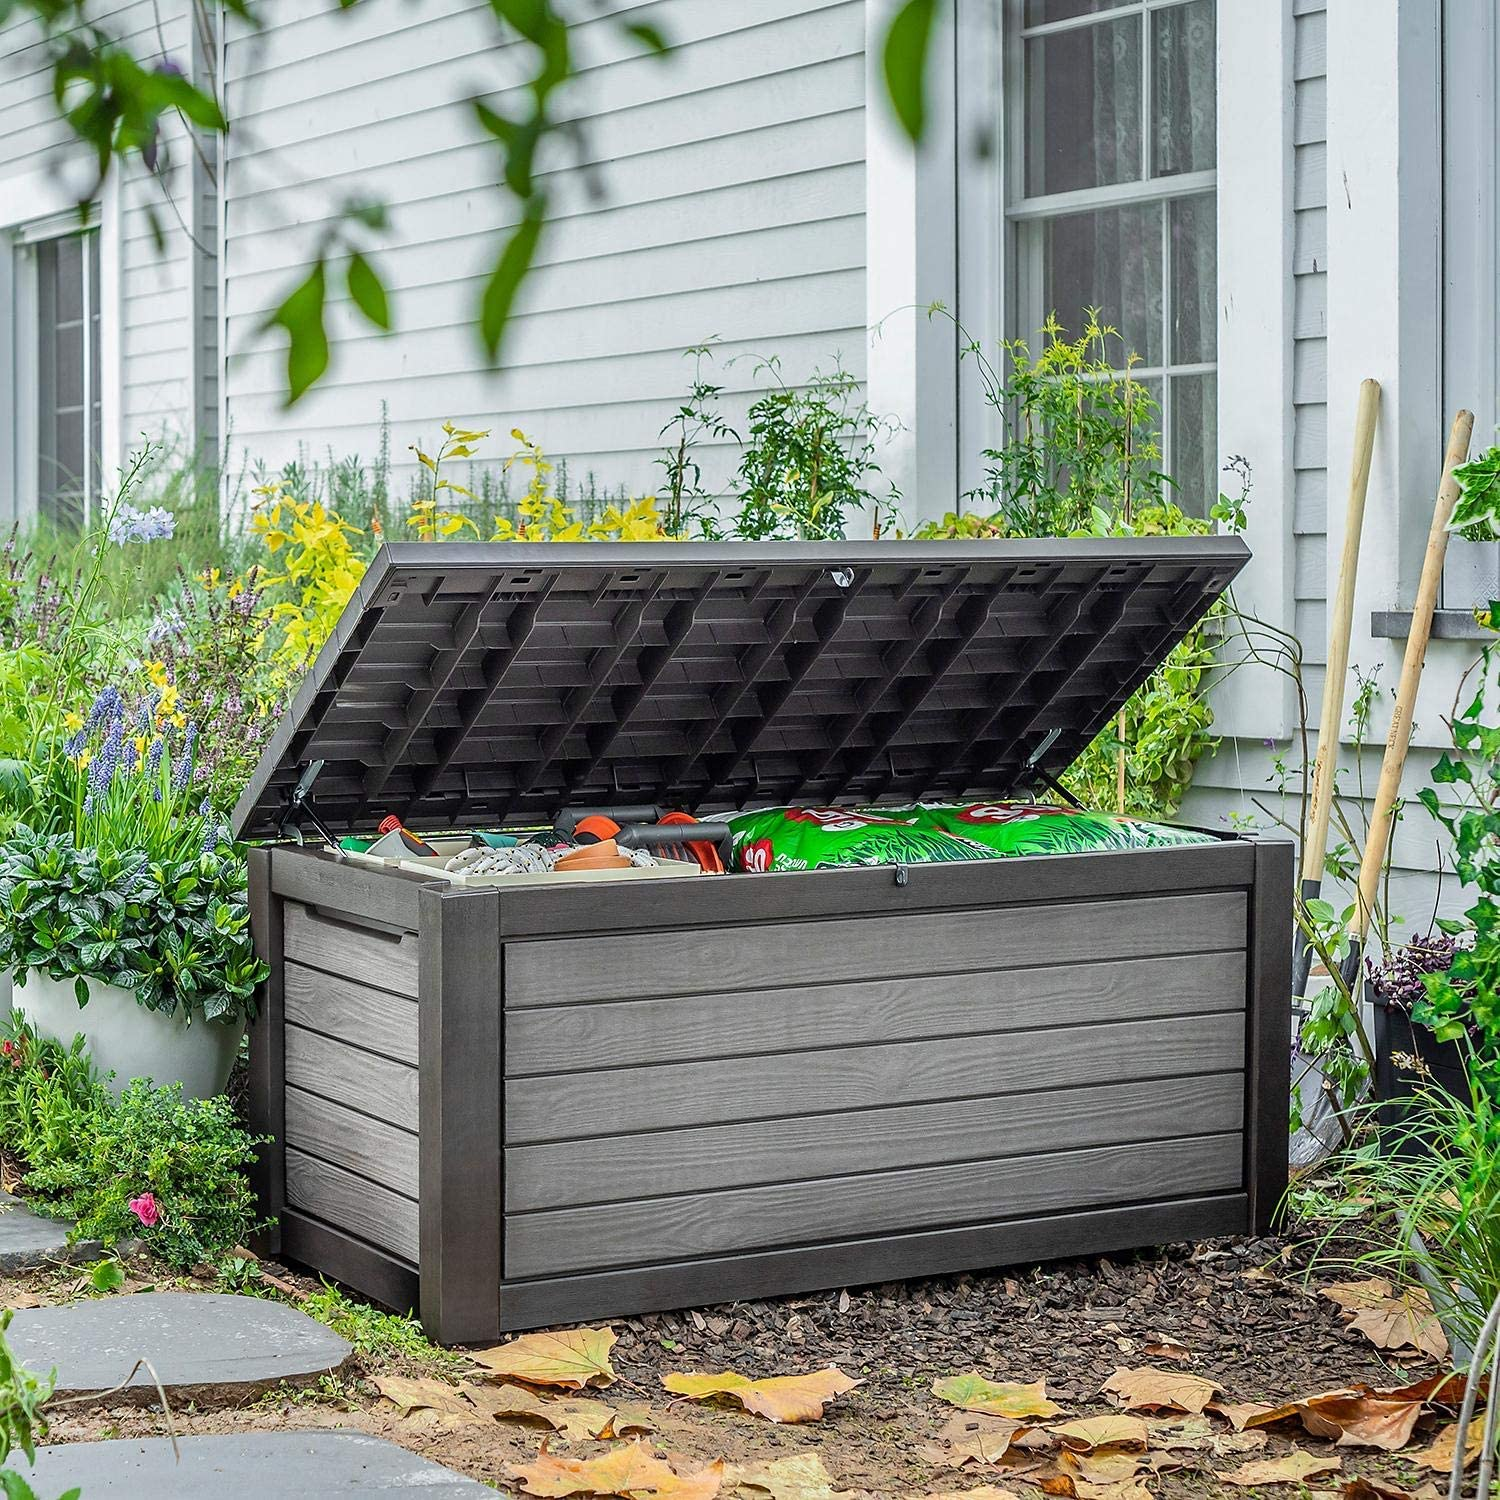 Pool Or Outdoor Storage Keter 165-Gallon  Weather Resistant Outdoor Deck Box